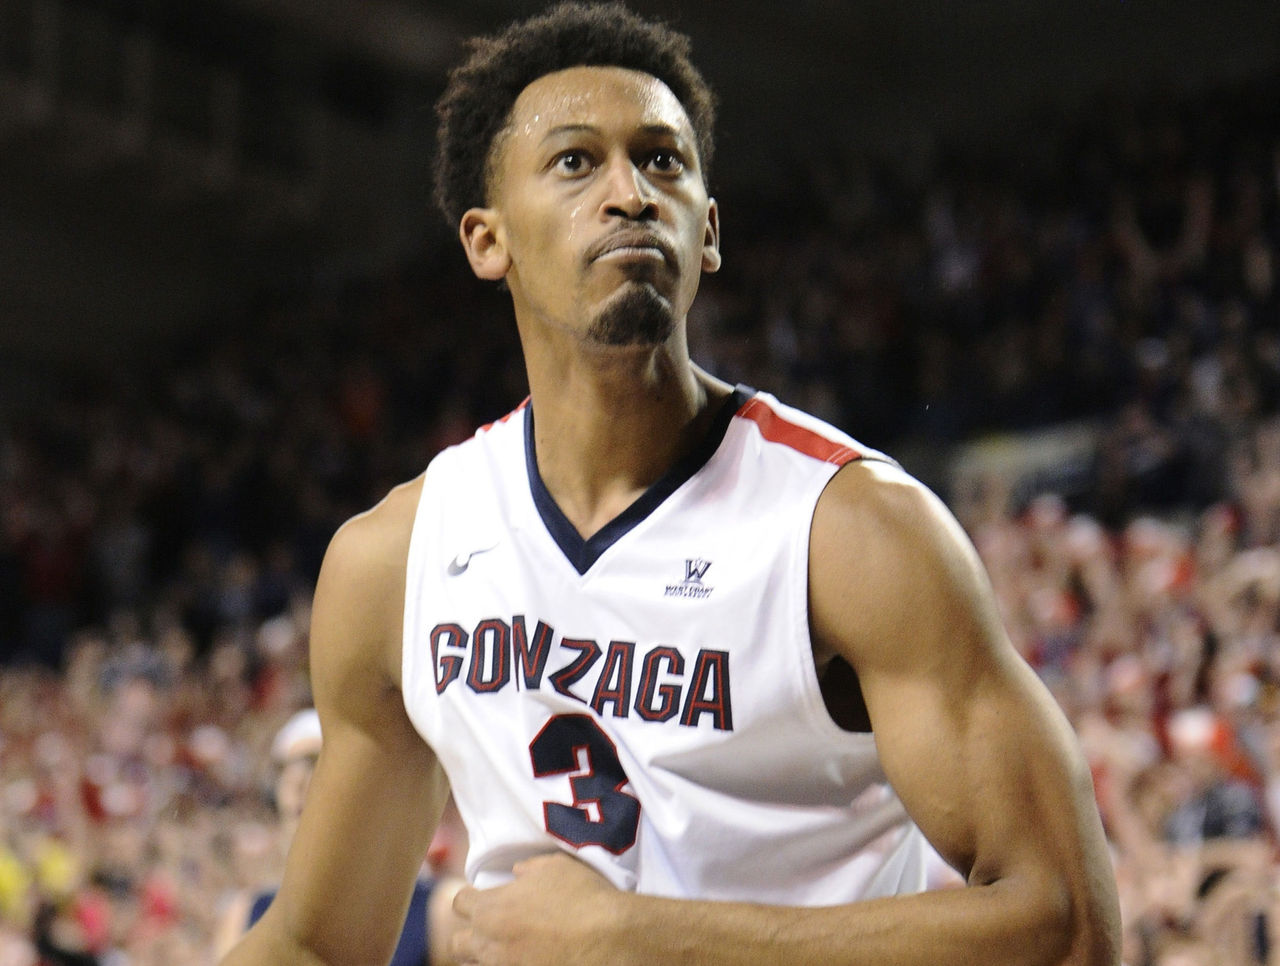 Cropped_2017-01-15t051916z_2003947715_nocid_rtrmadp_3_ncaa-basketball-st-mary-s-at-gonzaga